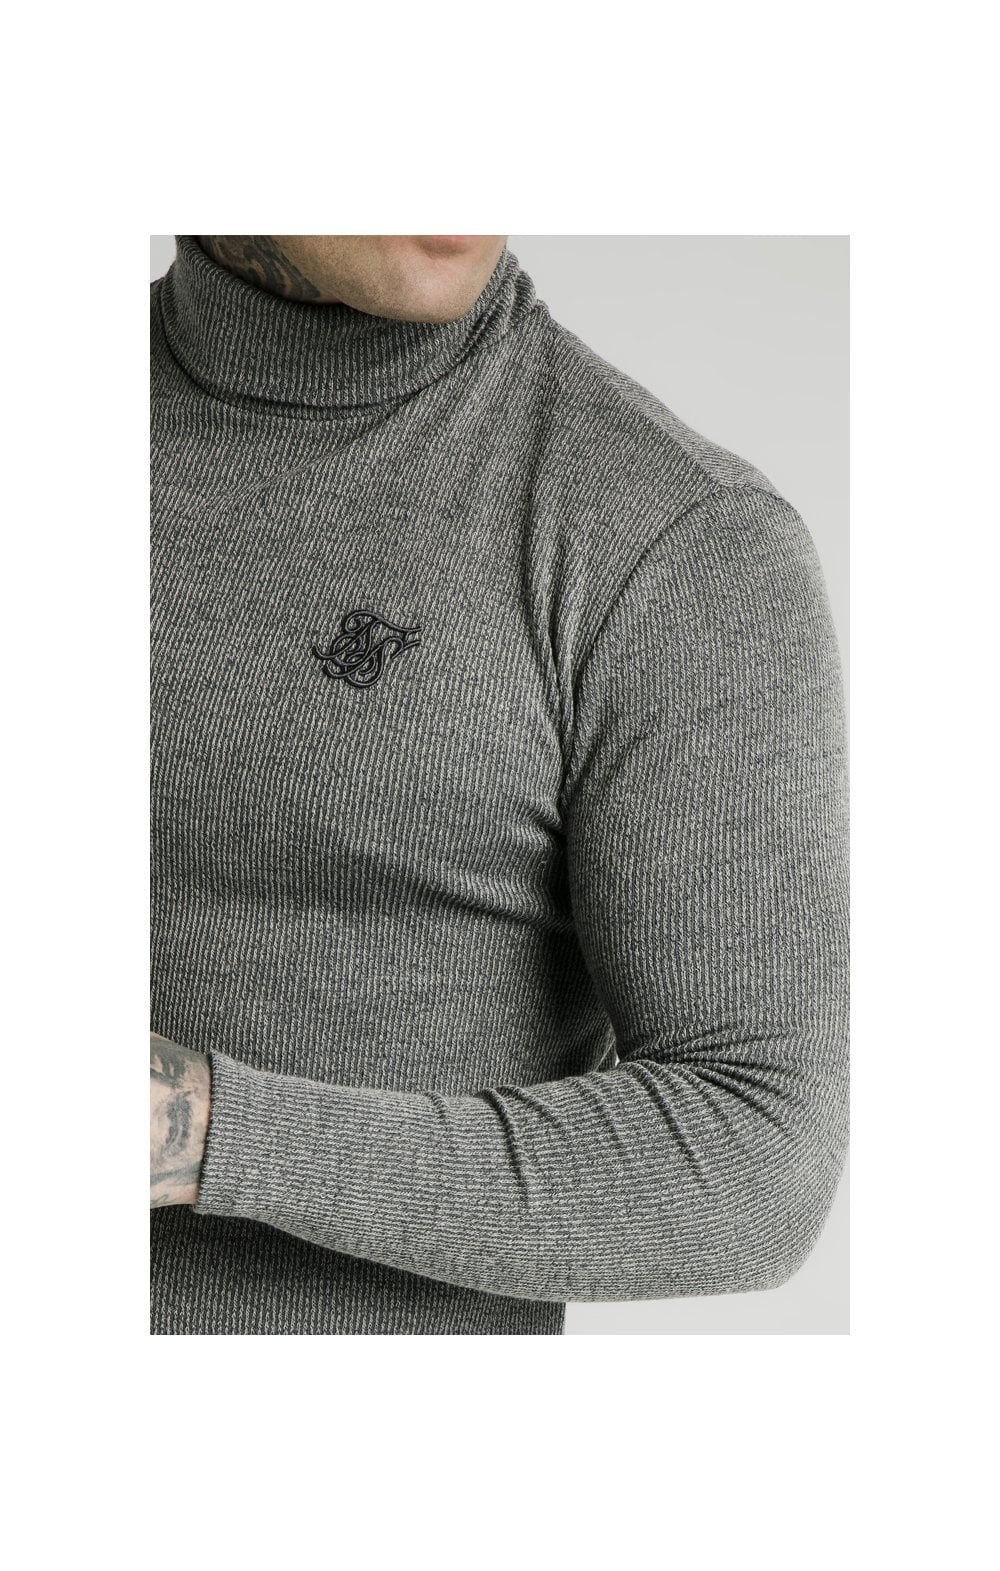 SikSilk Rib Turtle Neck - Grey (1)